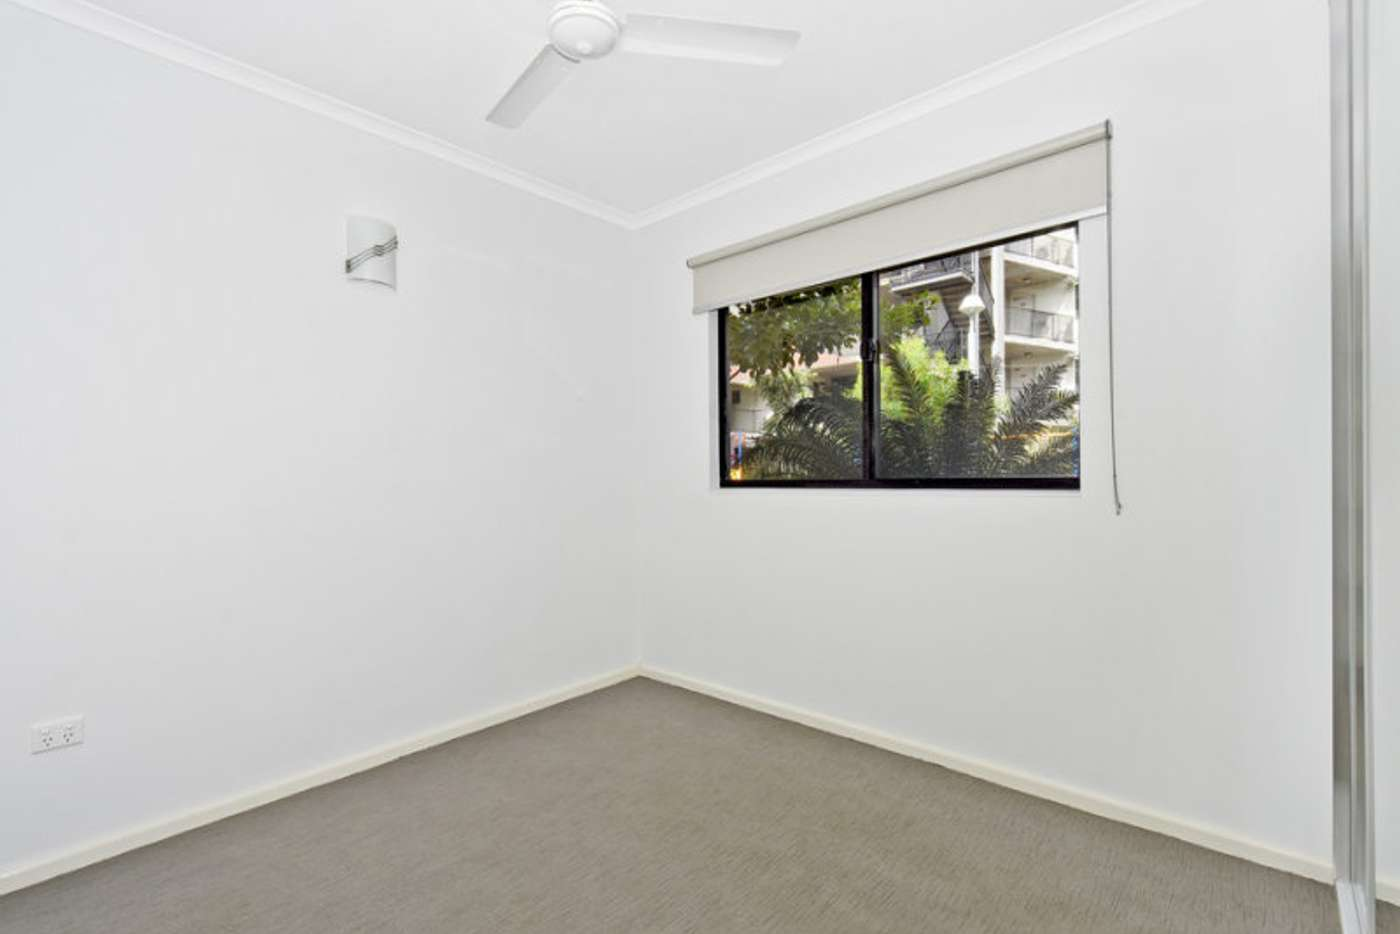 Seventh view of Homely apartment listing, 8E/174 Forrest Parade, Rosebery NT 832